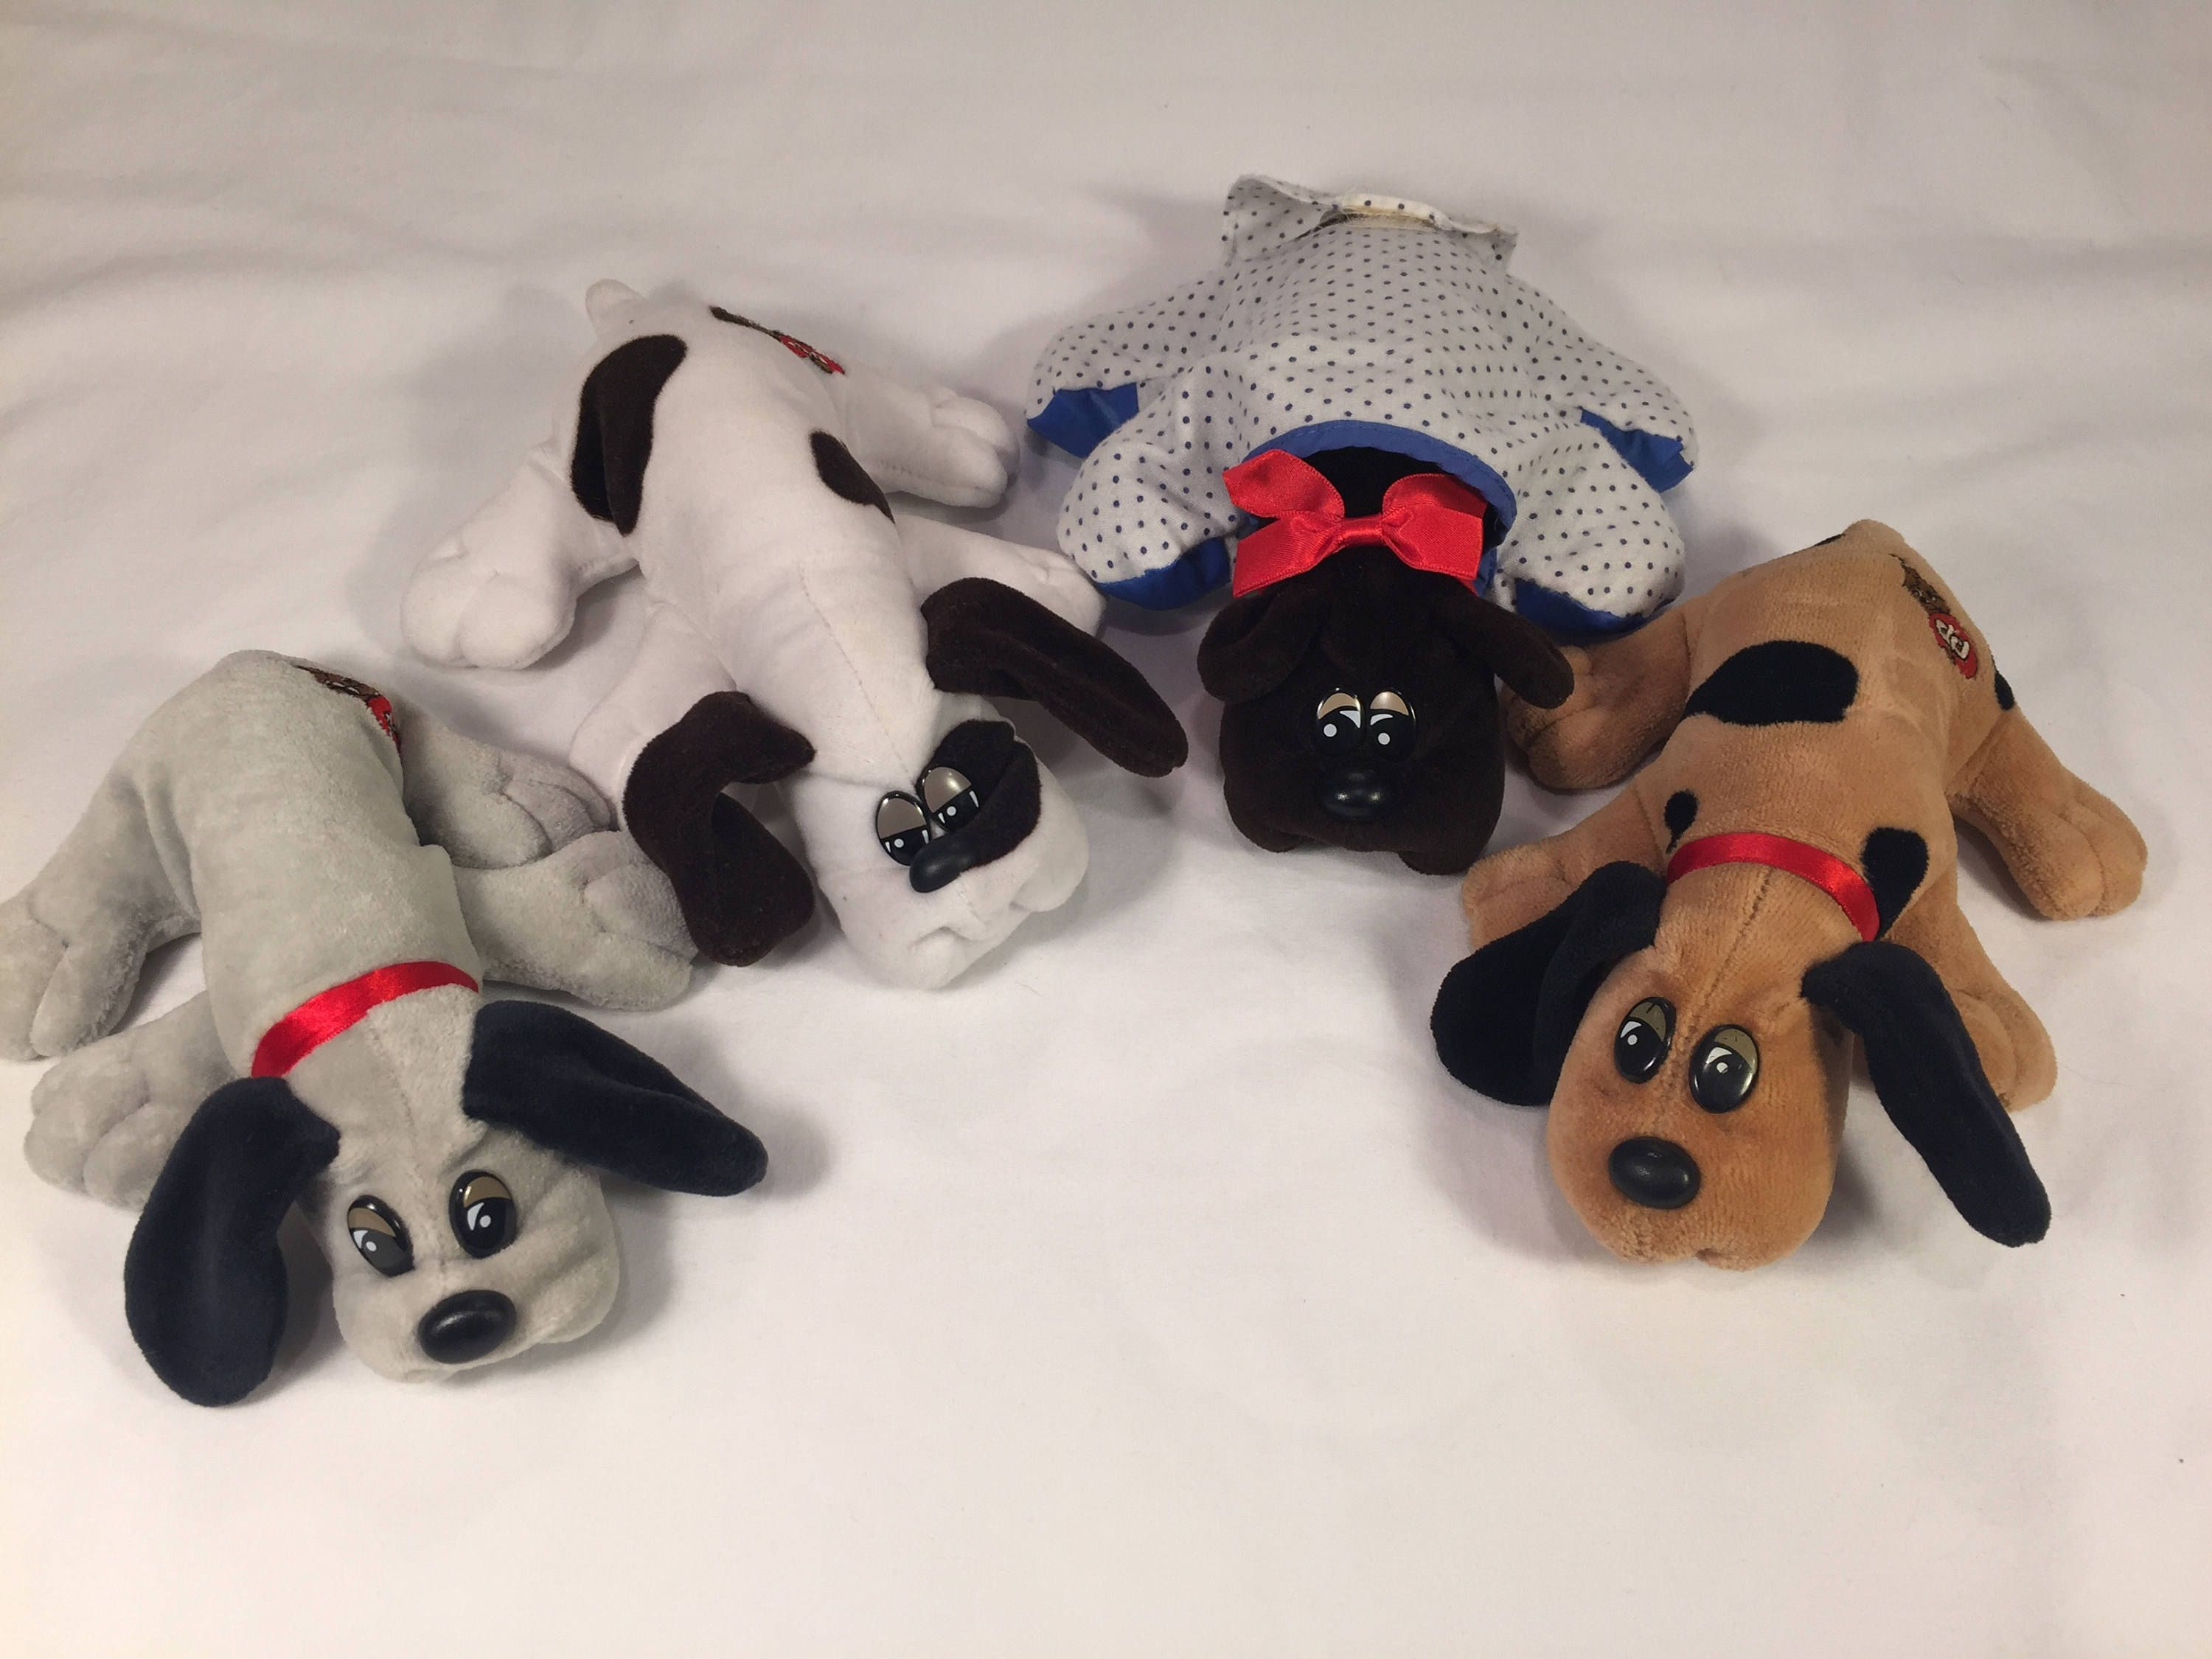 Pound Puppies Newborns Lot Vintage 1980s Plush Pound Puppies